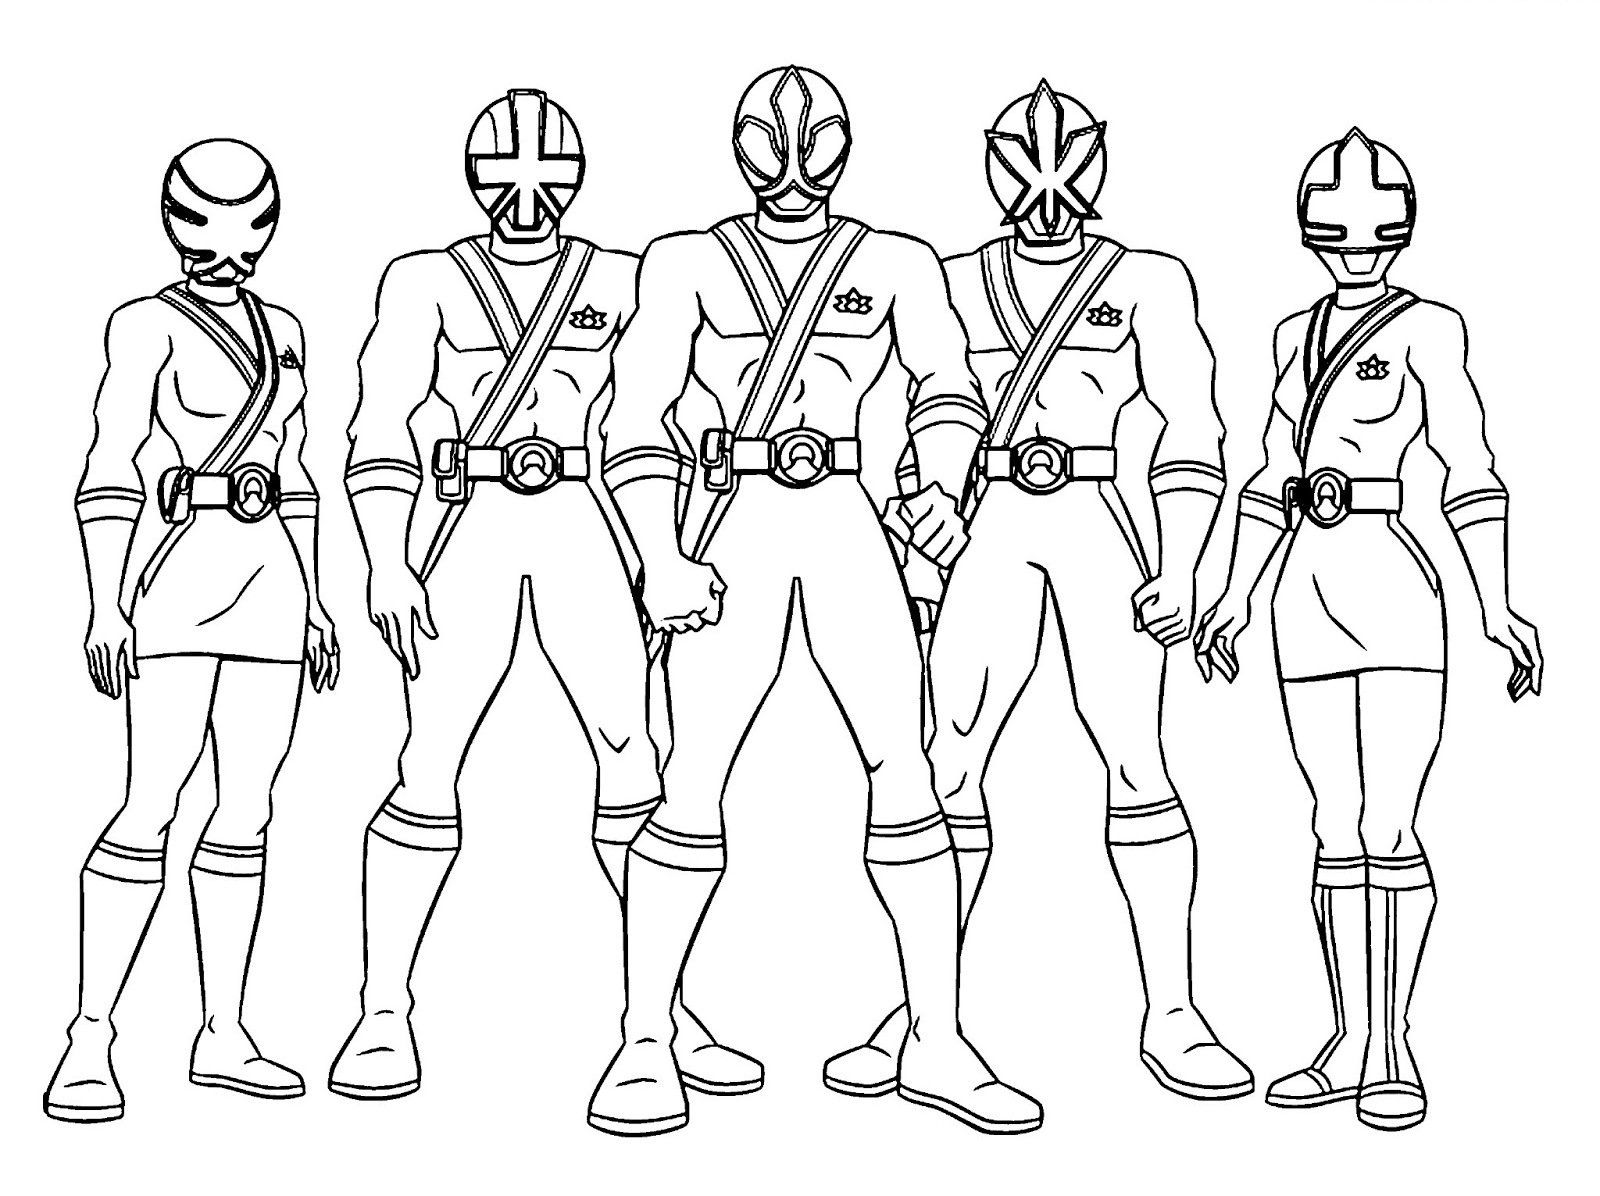 Coloring Pages Power Rangers Power Rangers Coloring Pages Power Rangers Dino Charge Power Rangers